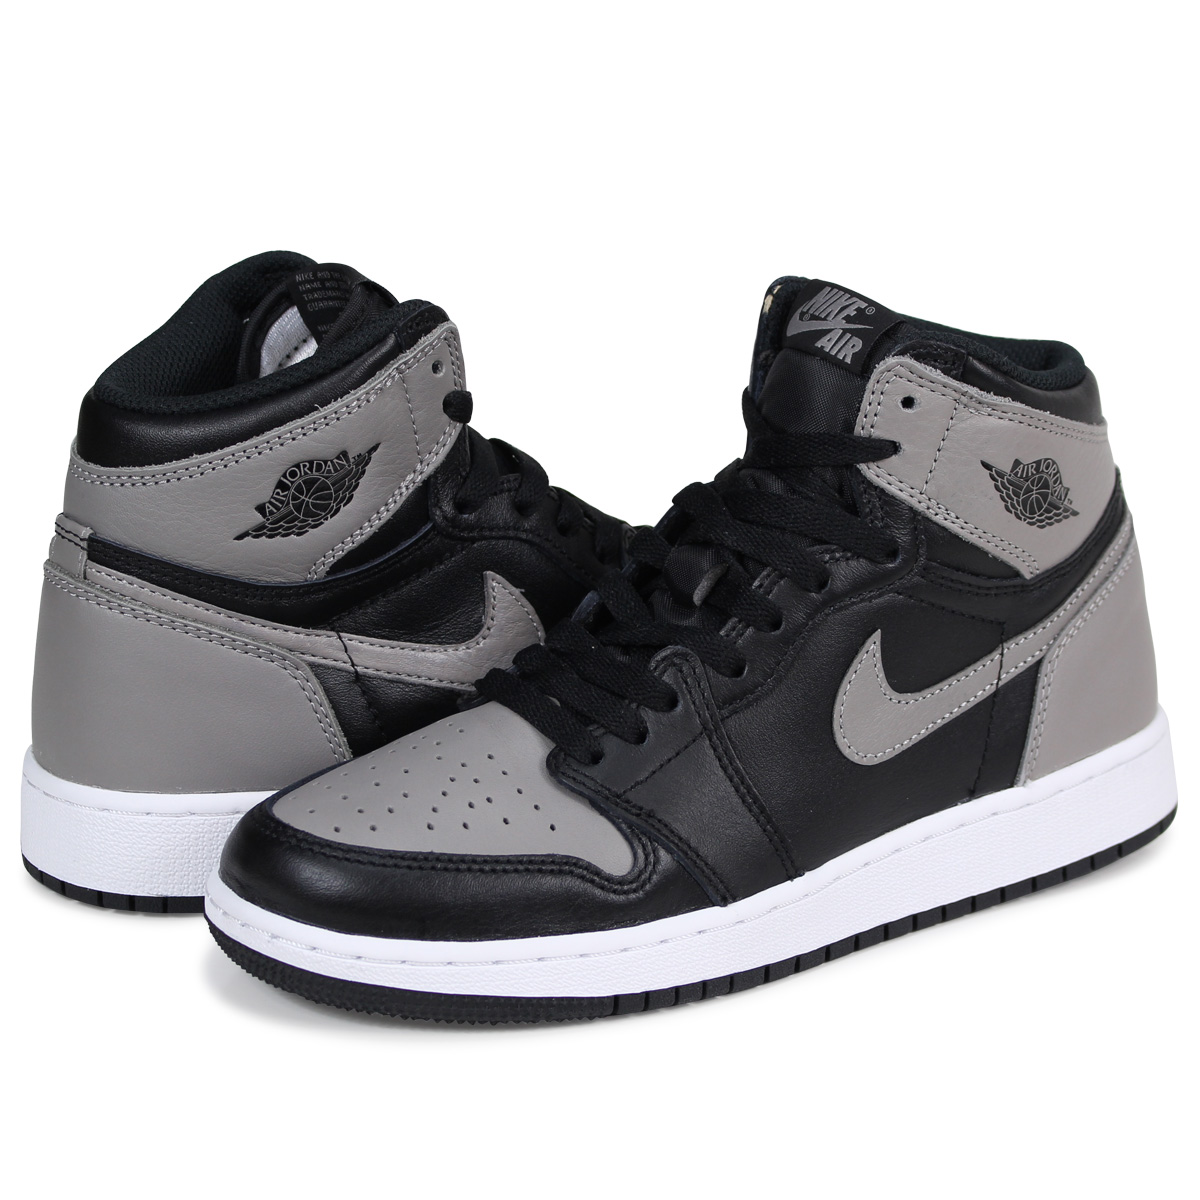 new product 7a968 e2322 NIKE AIR JORDAN 1 RETRO HIGH BG Nike Air Jordan 1 nostalgic Haile Dis  sneakers 575,441-013 gray [load planned Shinnyu load in reservation product  5/2 ...